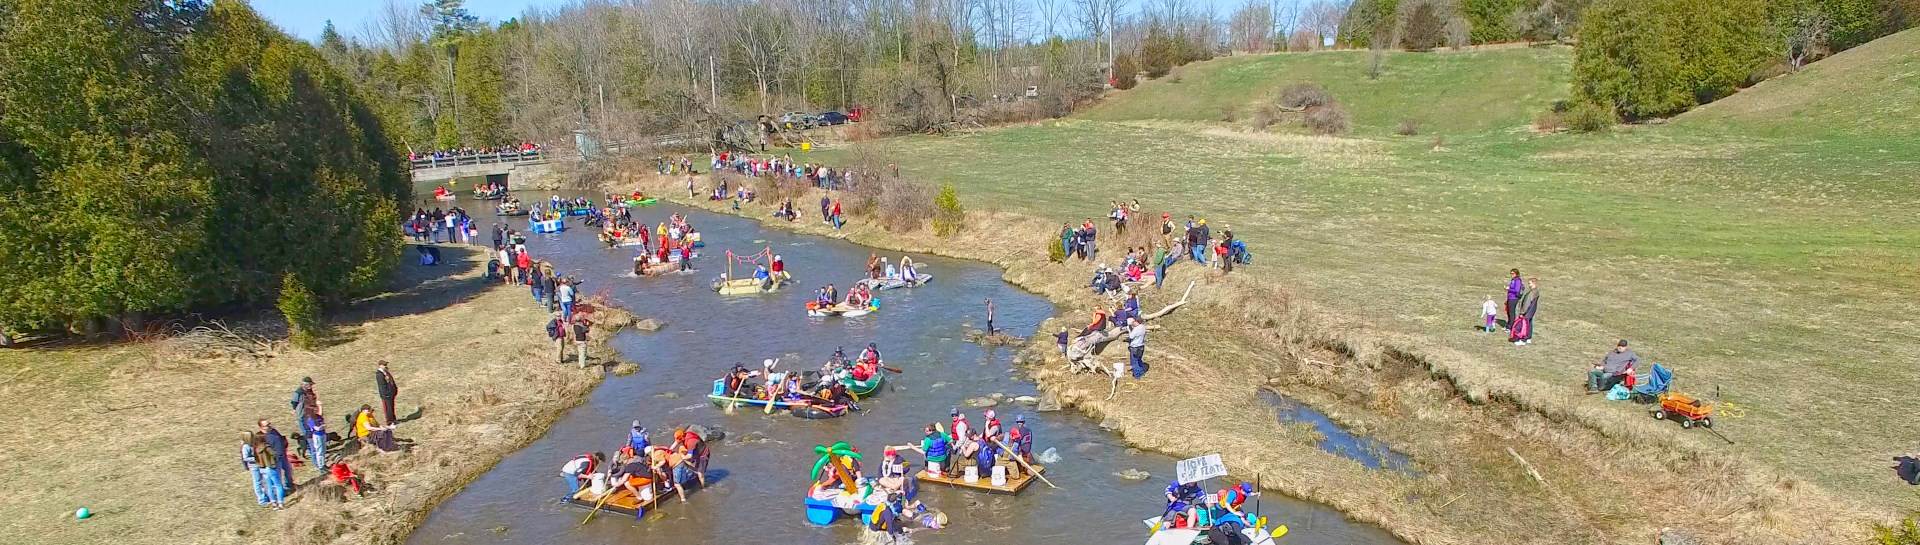 Drone shot of crazy water craft going down Ganaraska River in Spring with blue skies